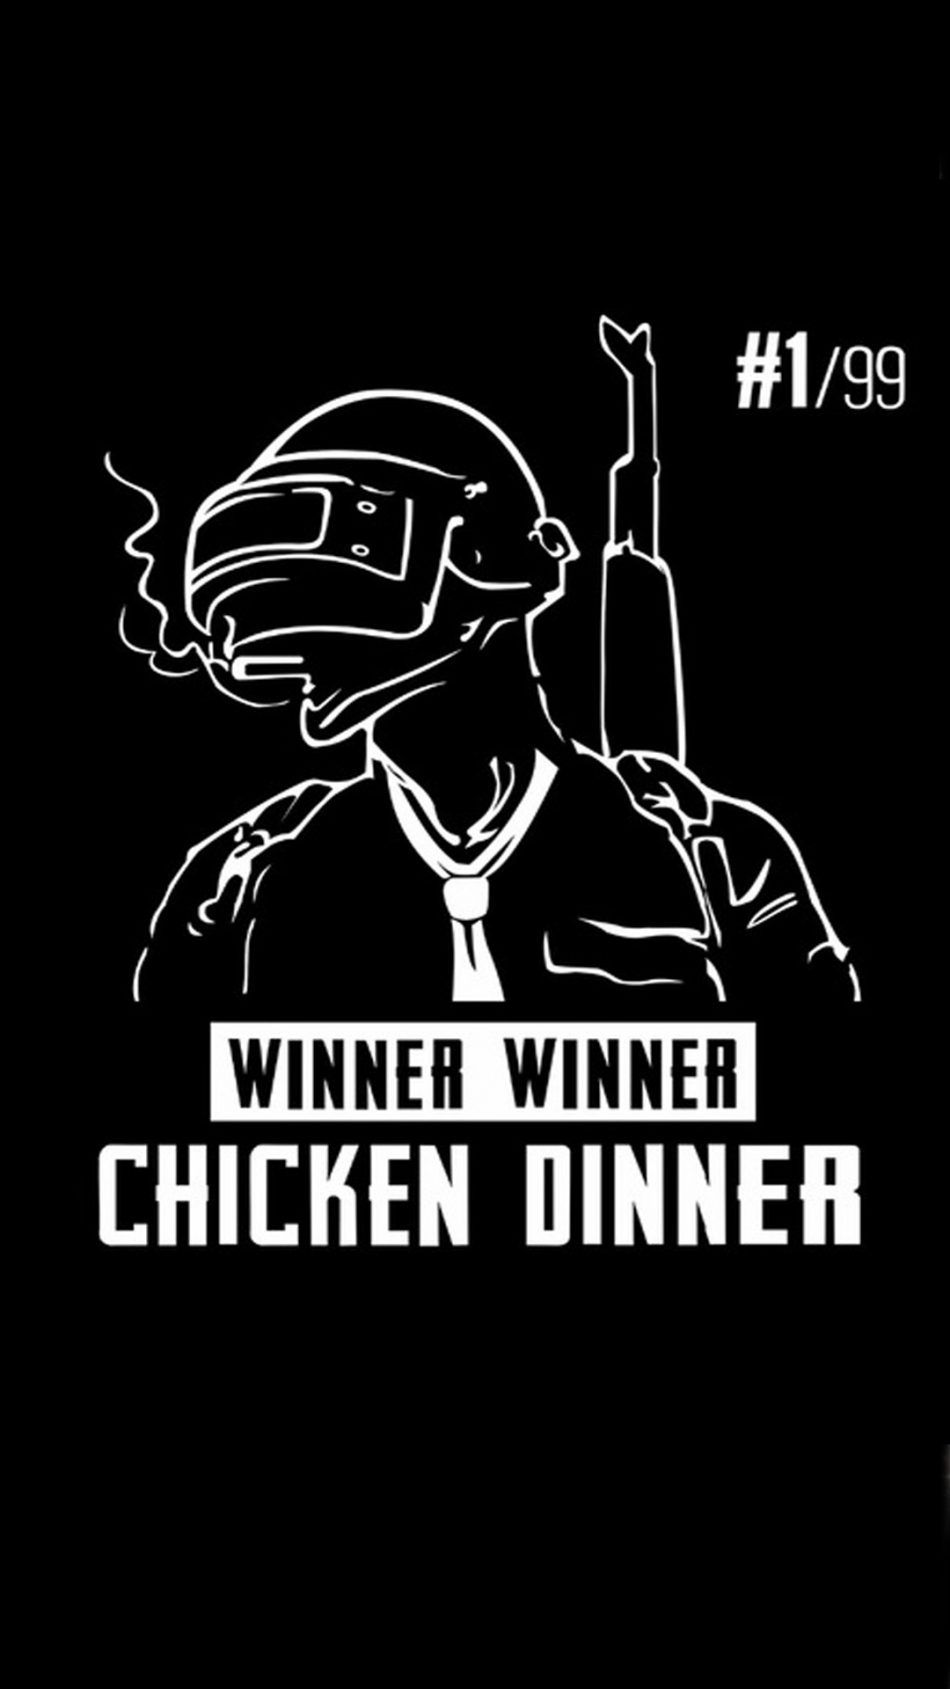 Winner Chicken Dinner Playerunknowns Battlegrounds Pubg Hd Mobile Wallpaper Pubg I Wallpaper